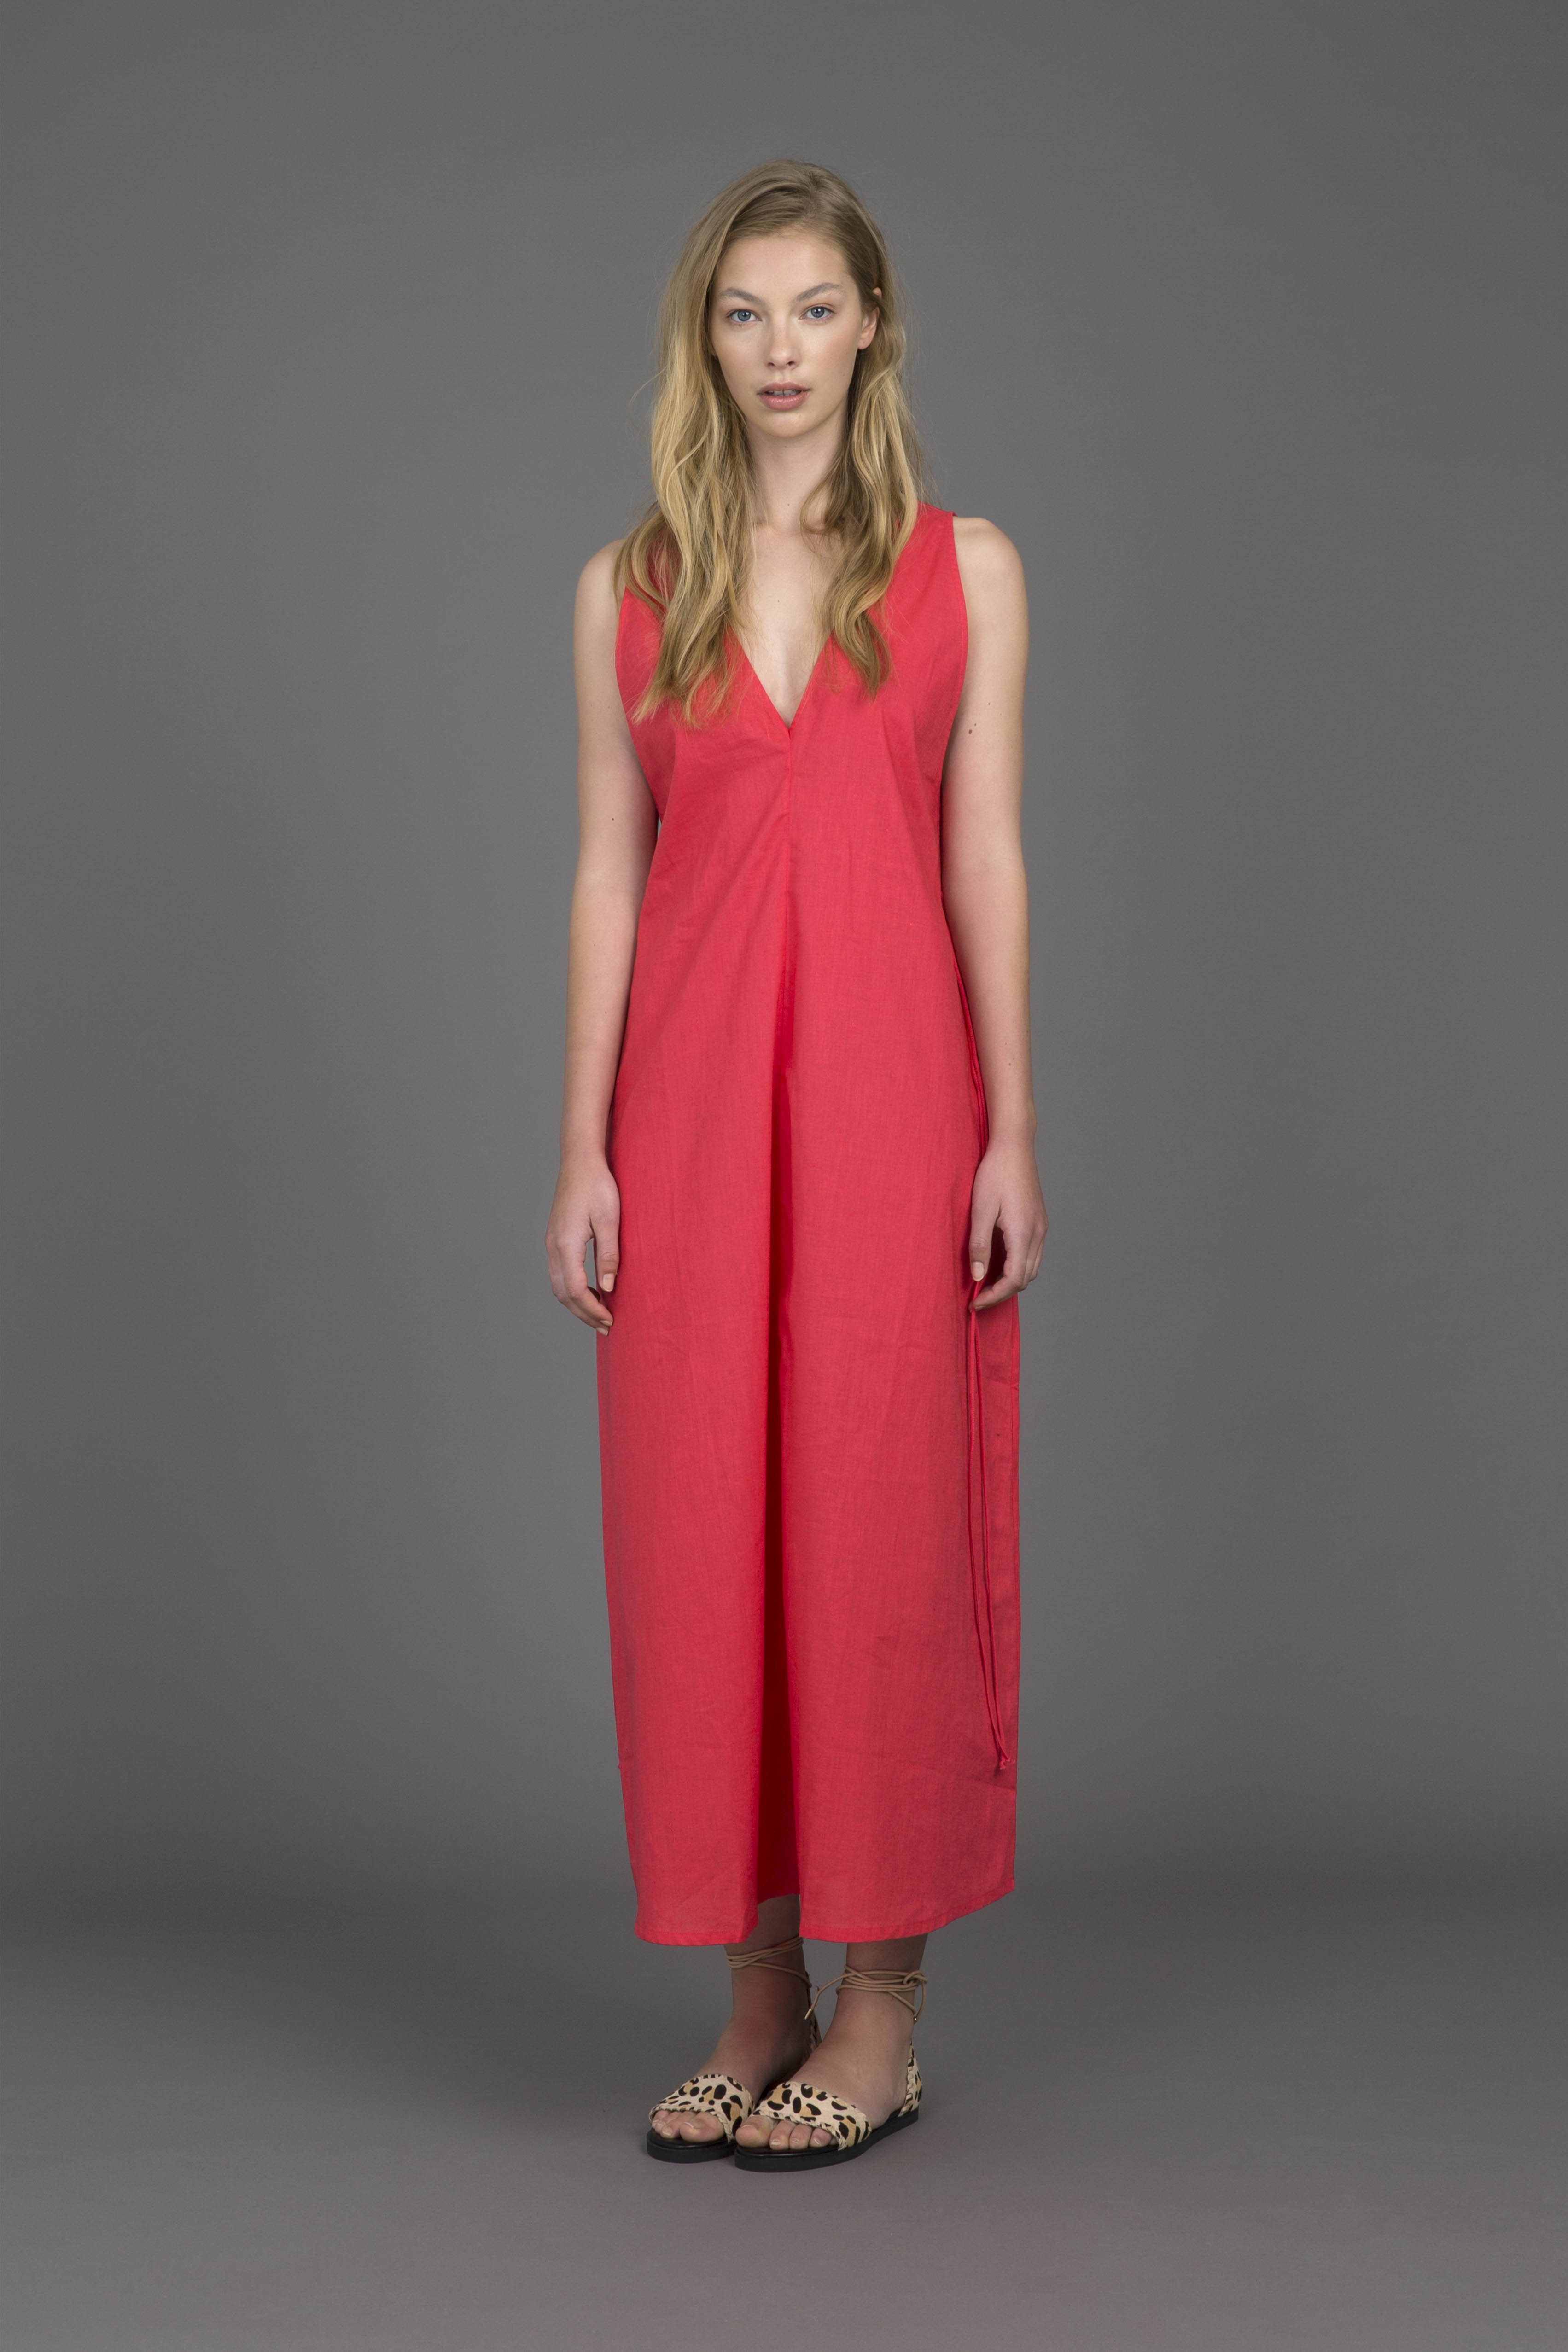 ruby-bahati-long-dress